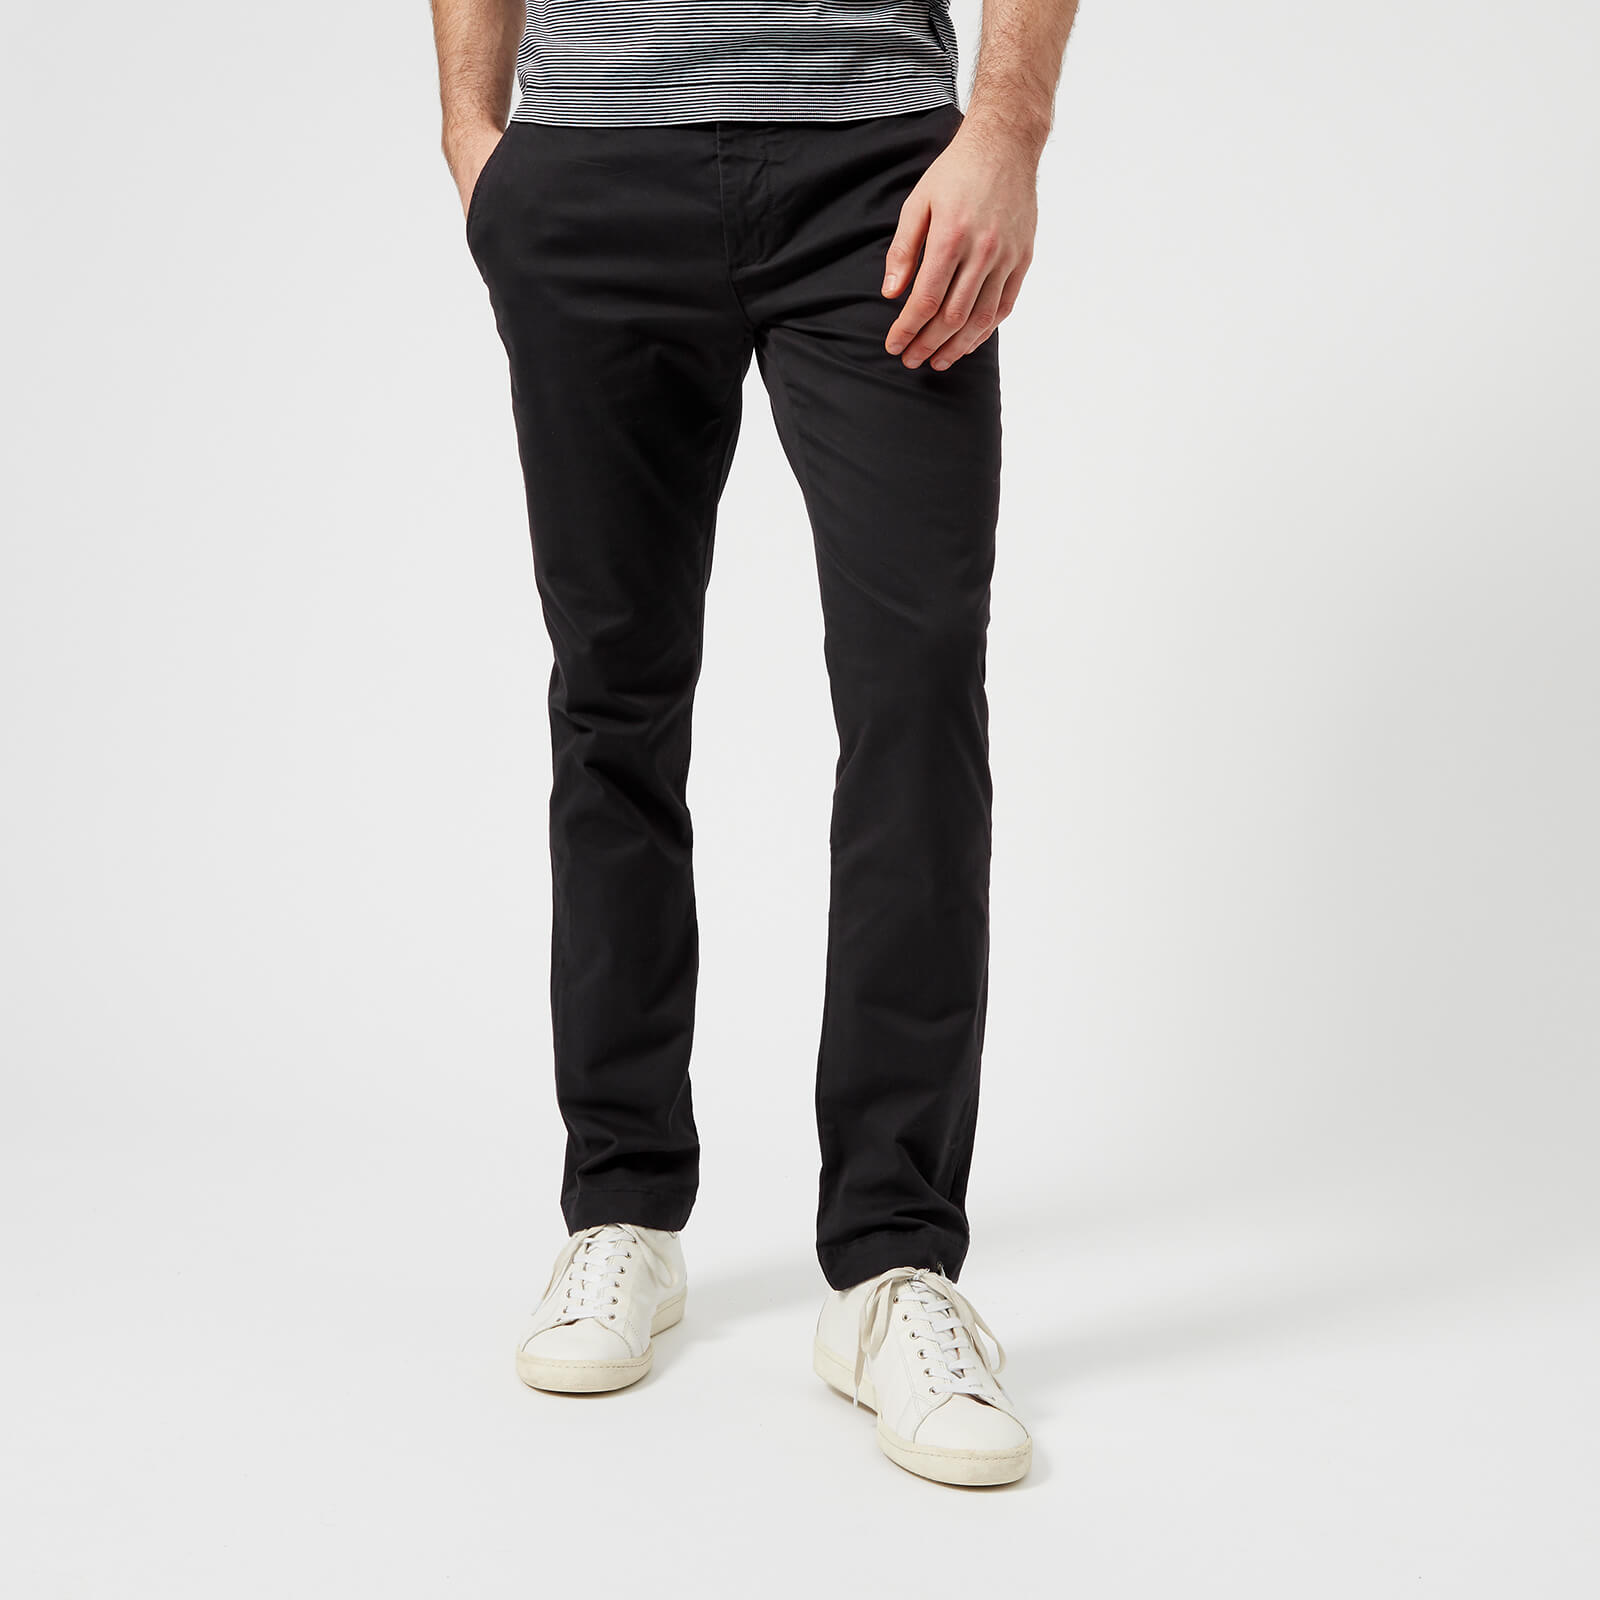 05f07413b Ted Baker Men s Procor Slim Fit Chinos - Navy Clothing